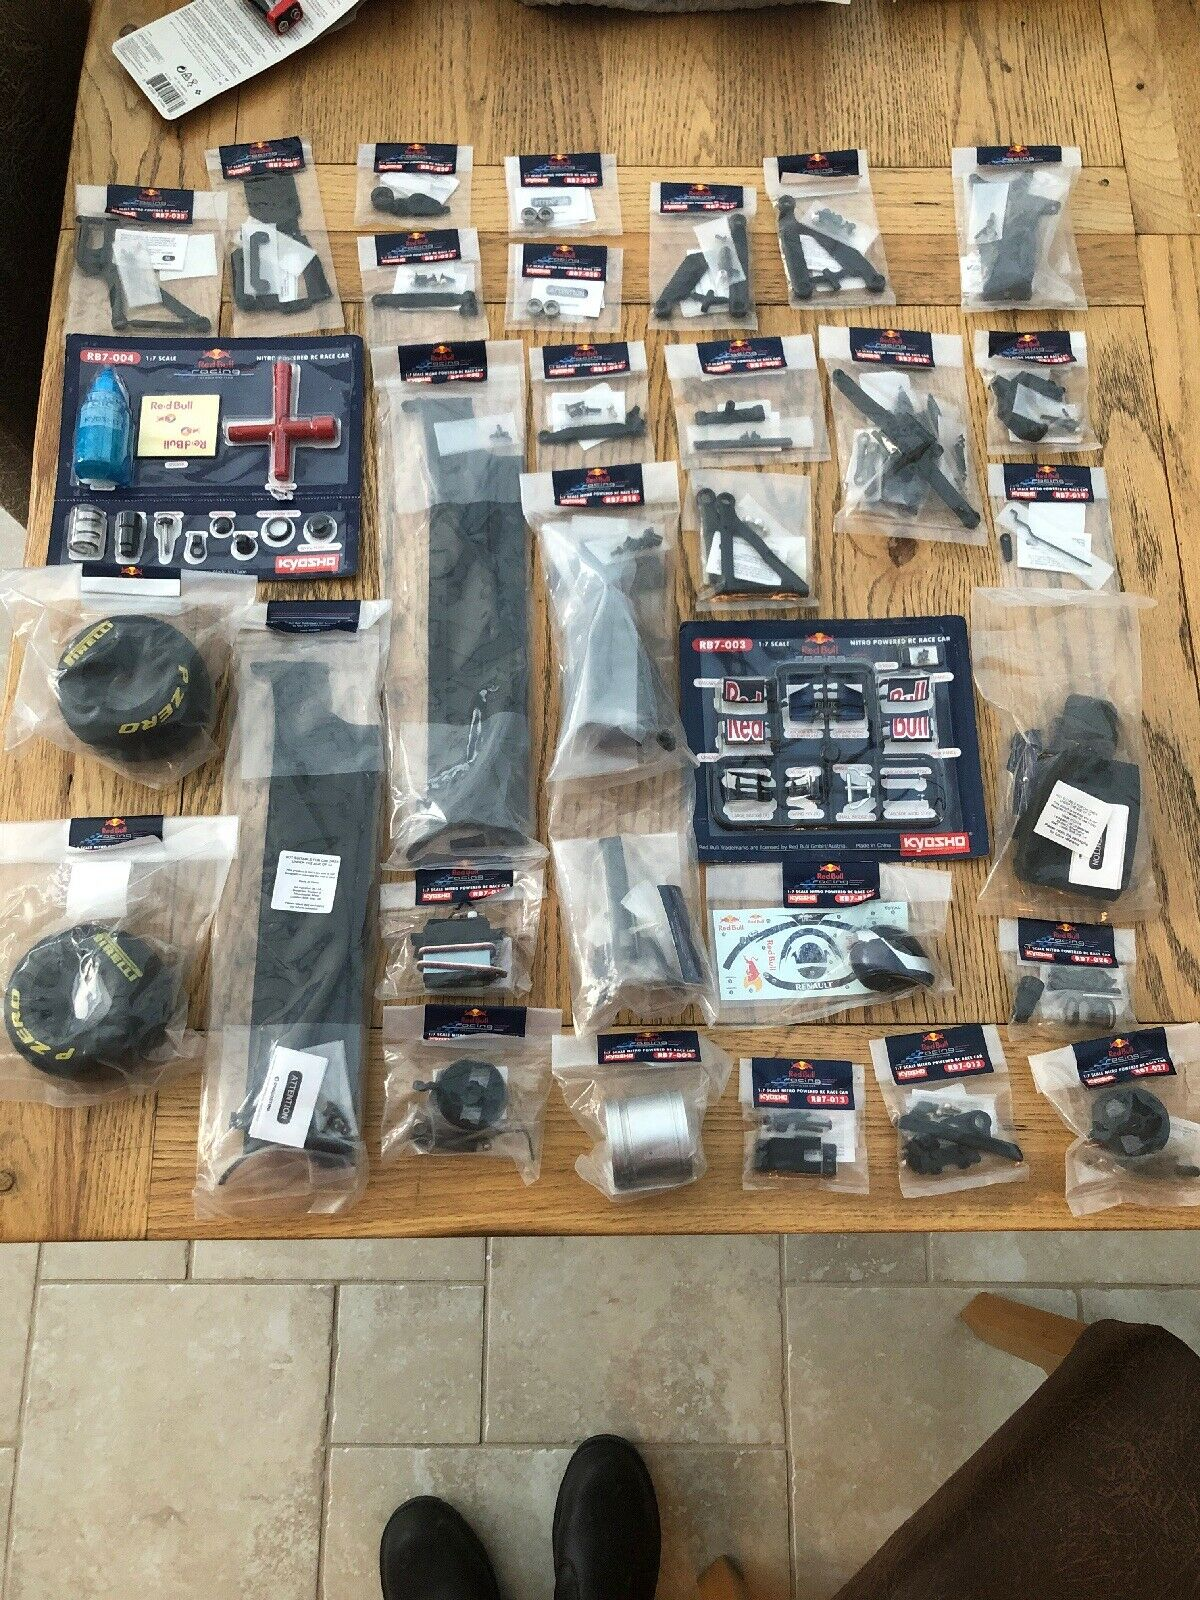 BRAND NEW PARTS RED BULL RACING 1 7 RB7 KYOSHO De Agostini NITRO RC RACE CAR